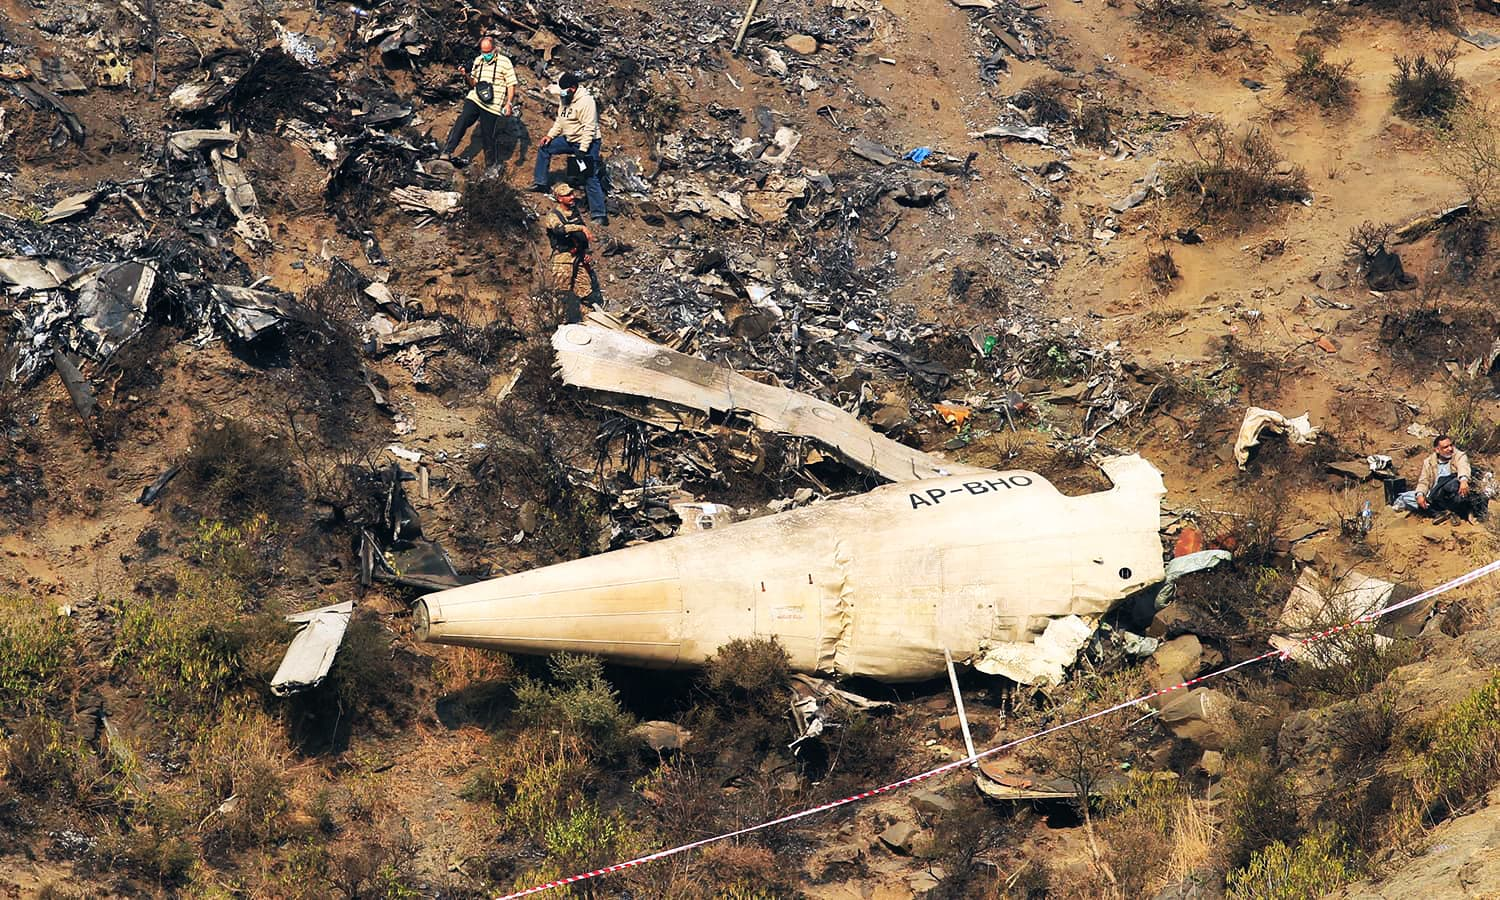 Black box data fails to find cause of Dec 7 plane crash